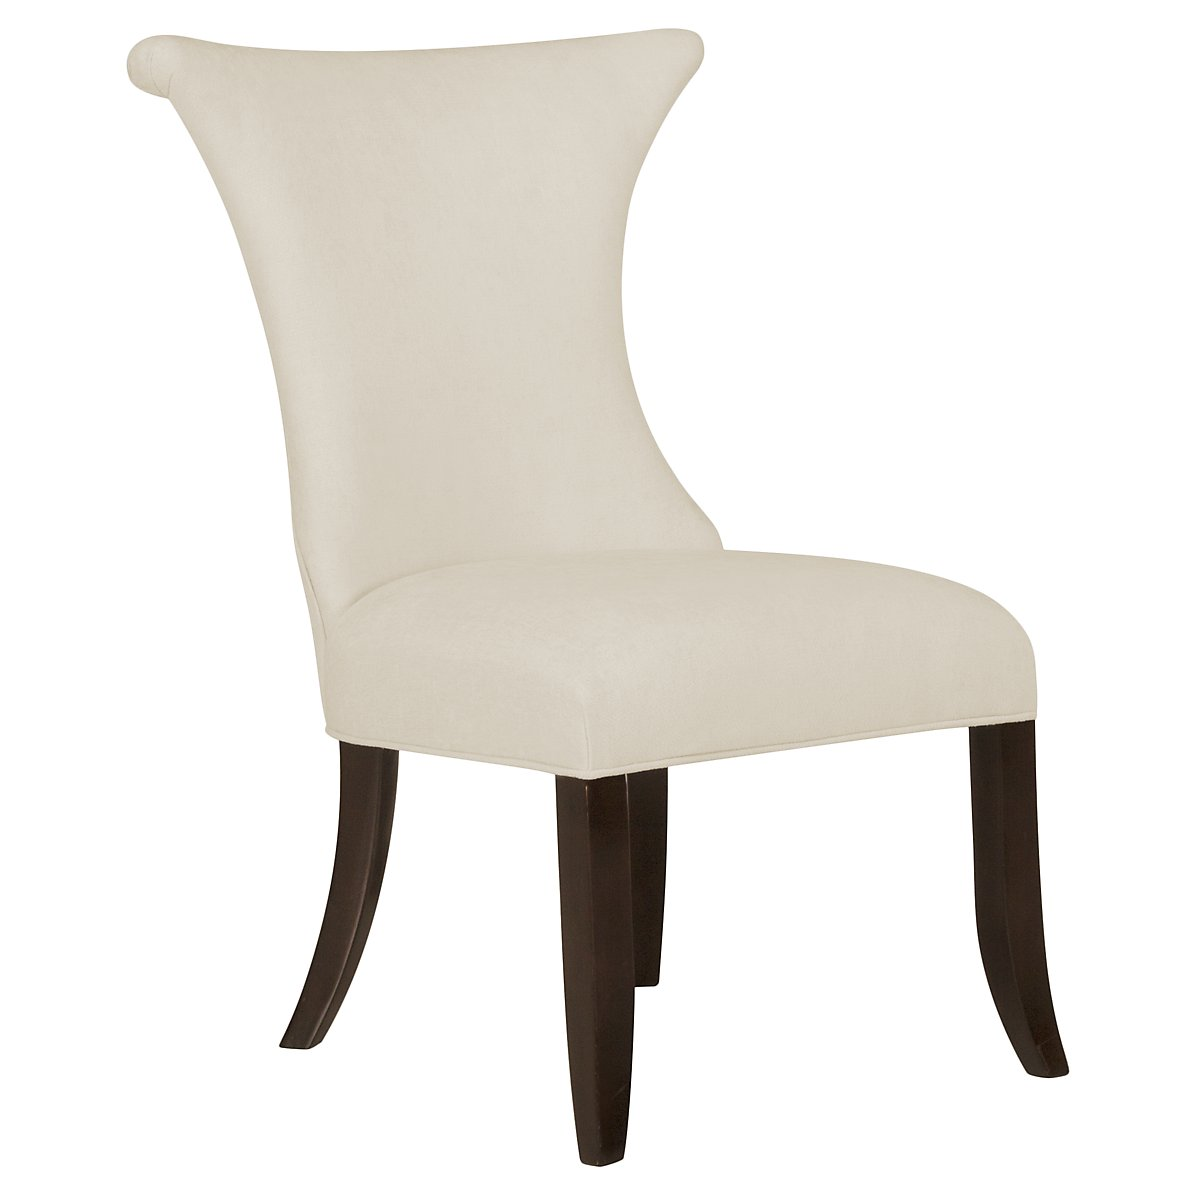 Jet Set2 Beige Upholstered Side Chair